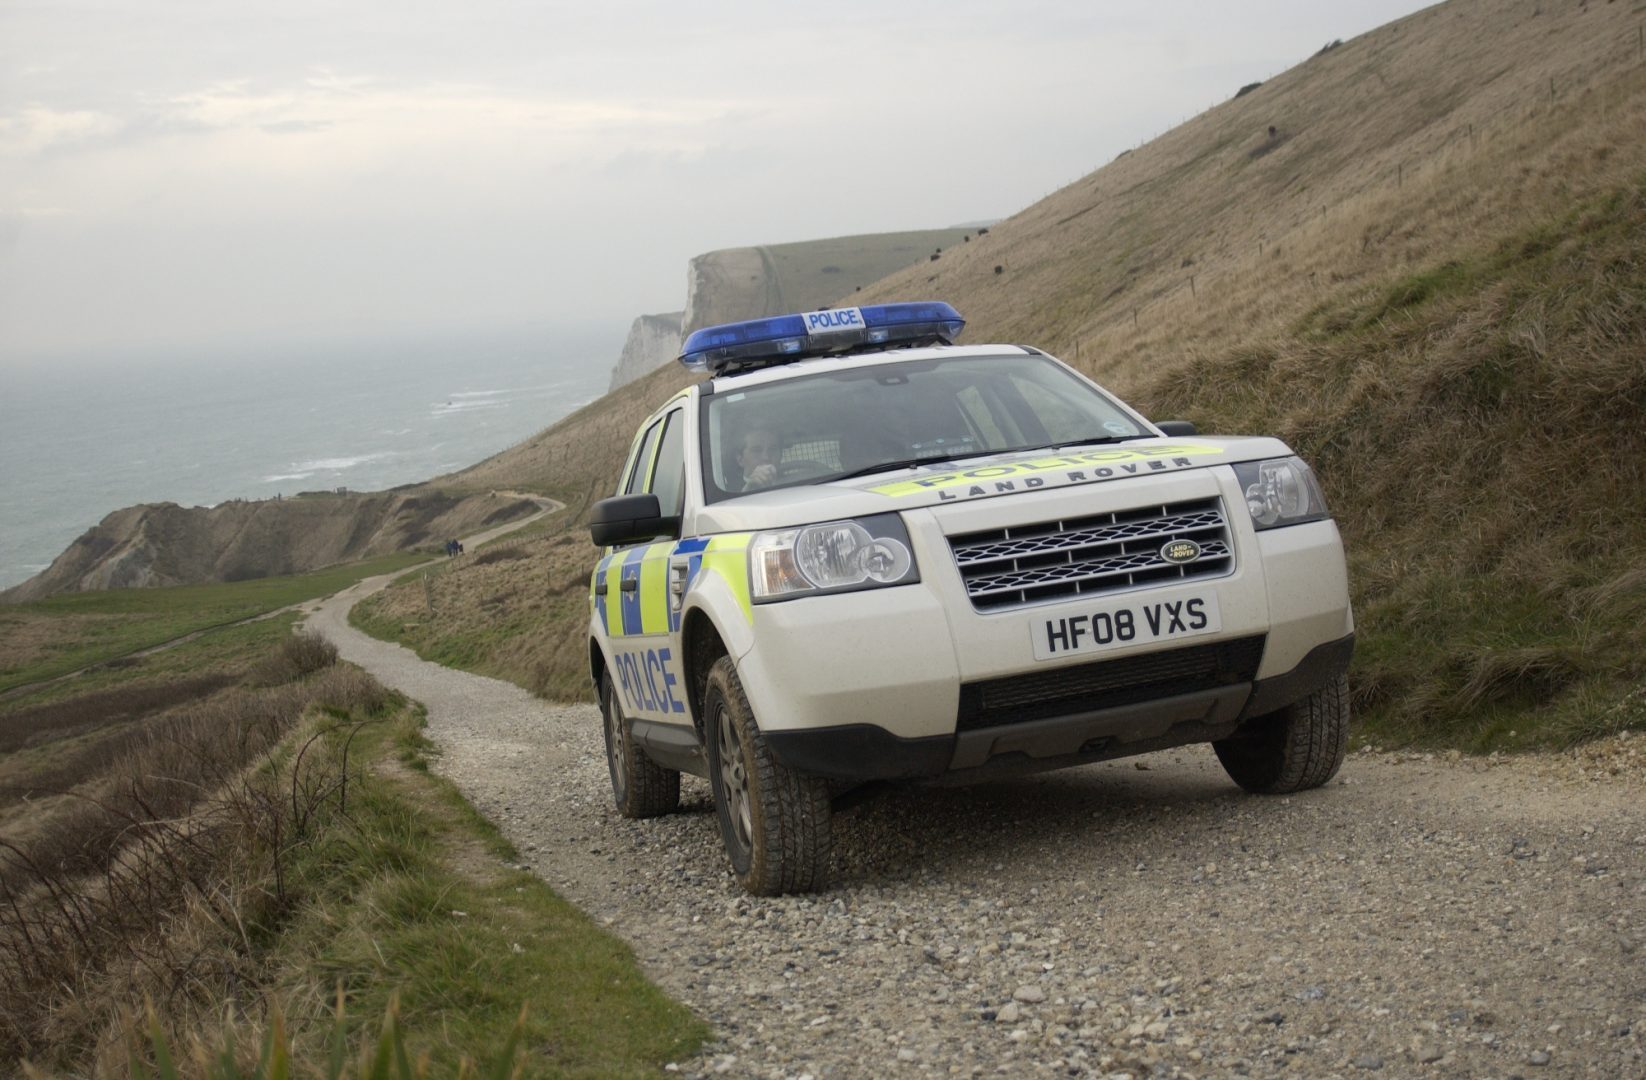 Up to 100 emergency services personnel will be carrying out an exercise at Lulworth Camp on Thursday, October 12. Picture: Dorset County Council